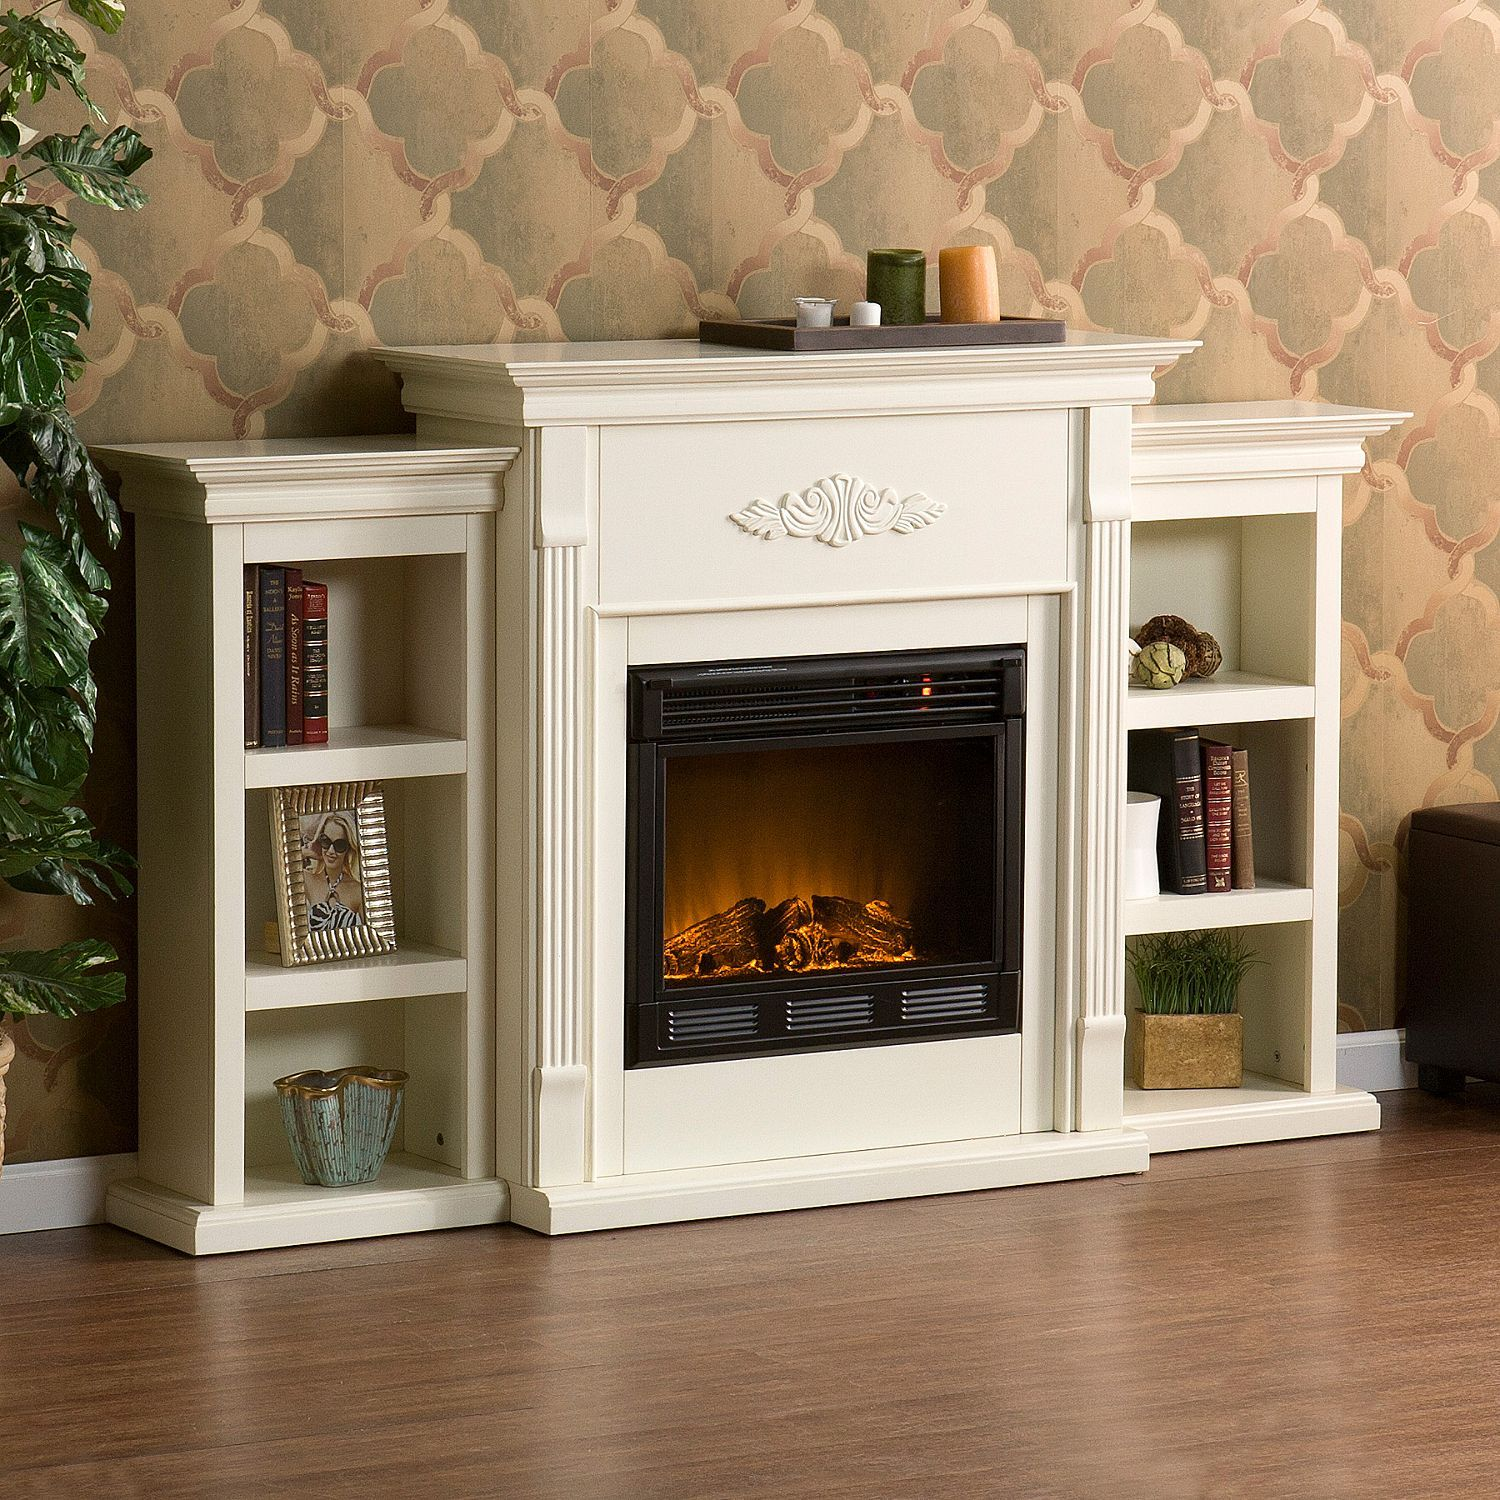 emerson electric fireplace ivory sam s club furniture finds